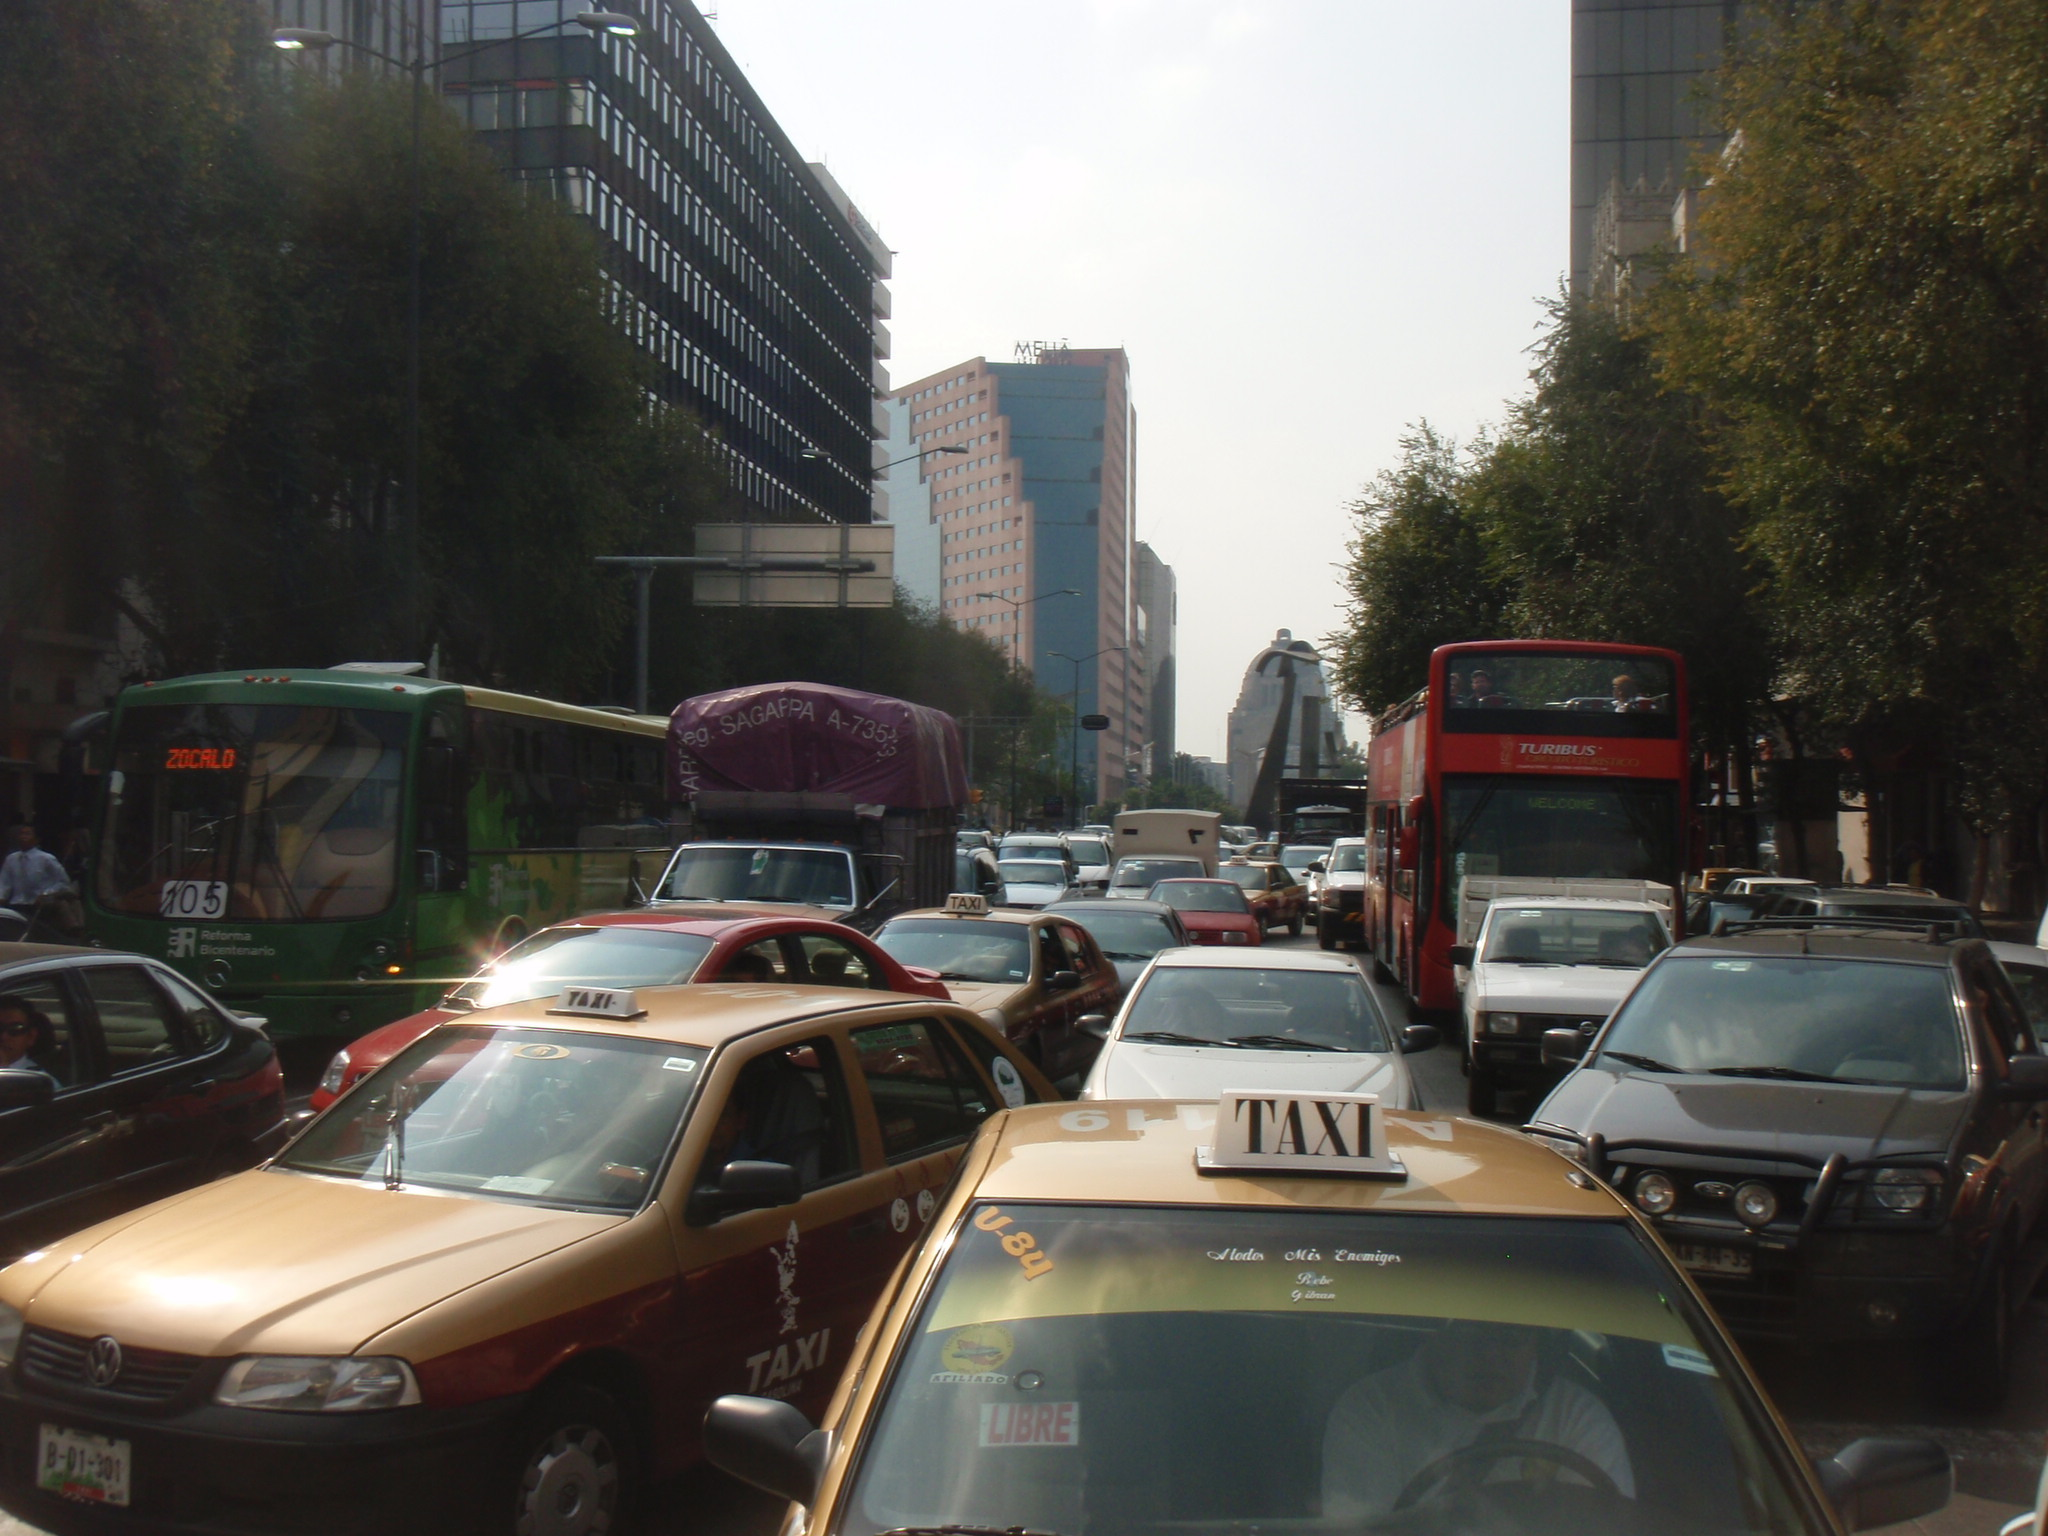 Typical traffic scene in Mexico City